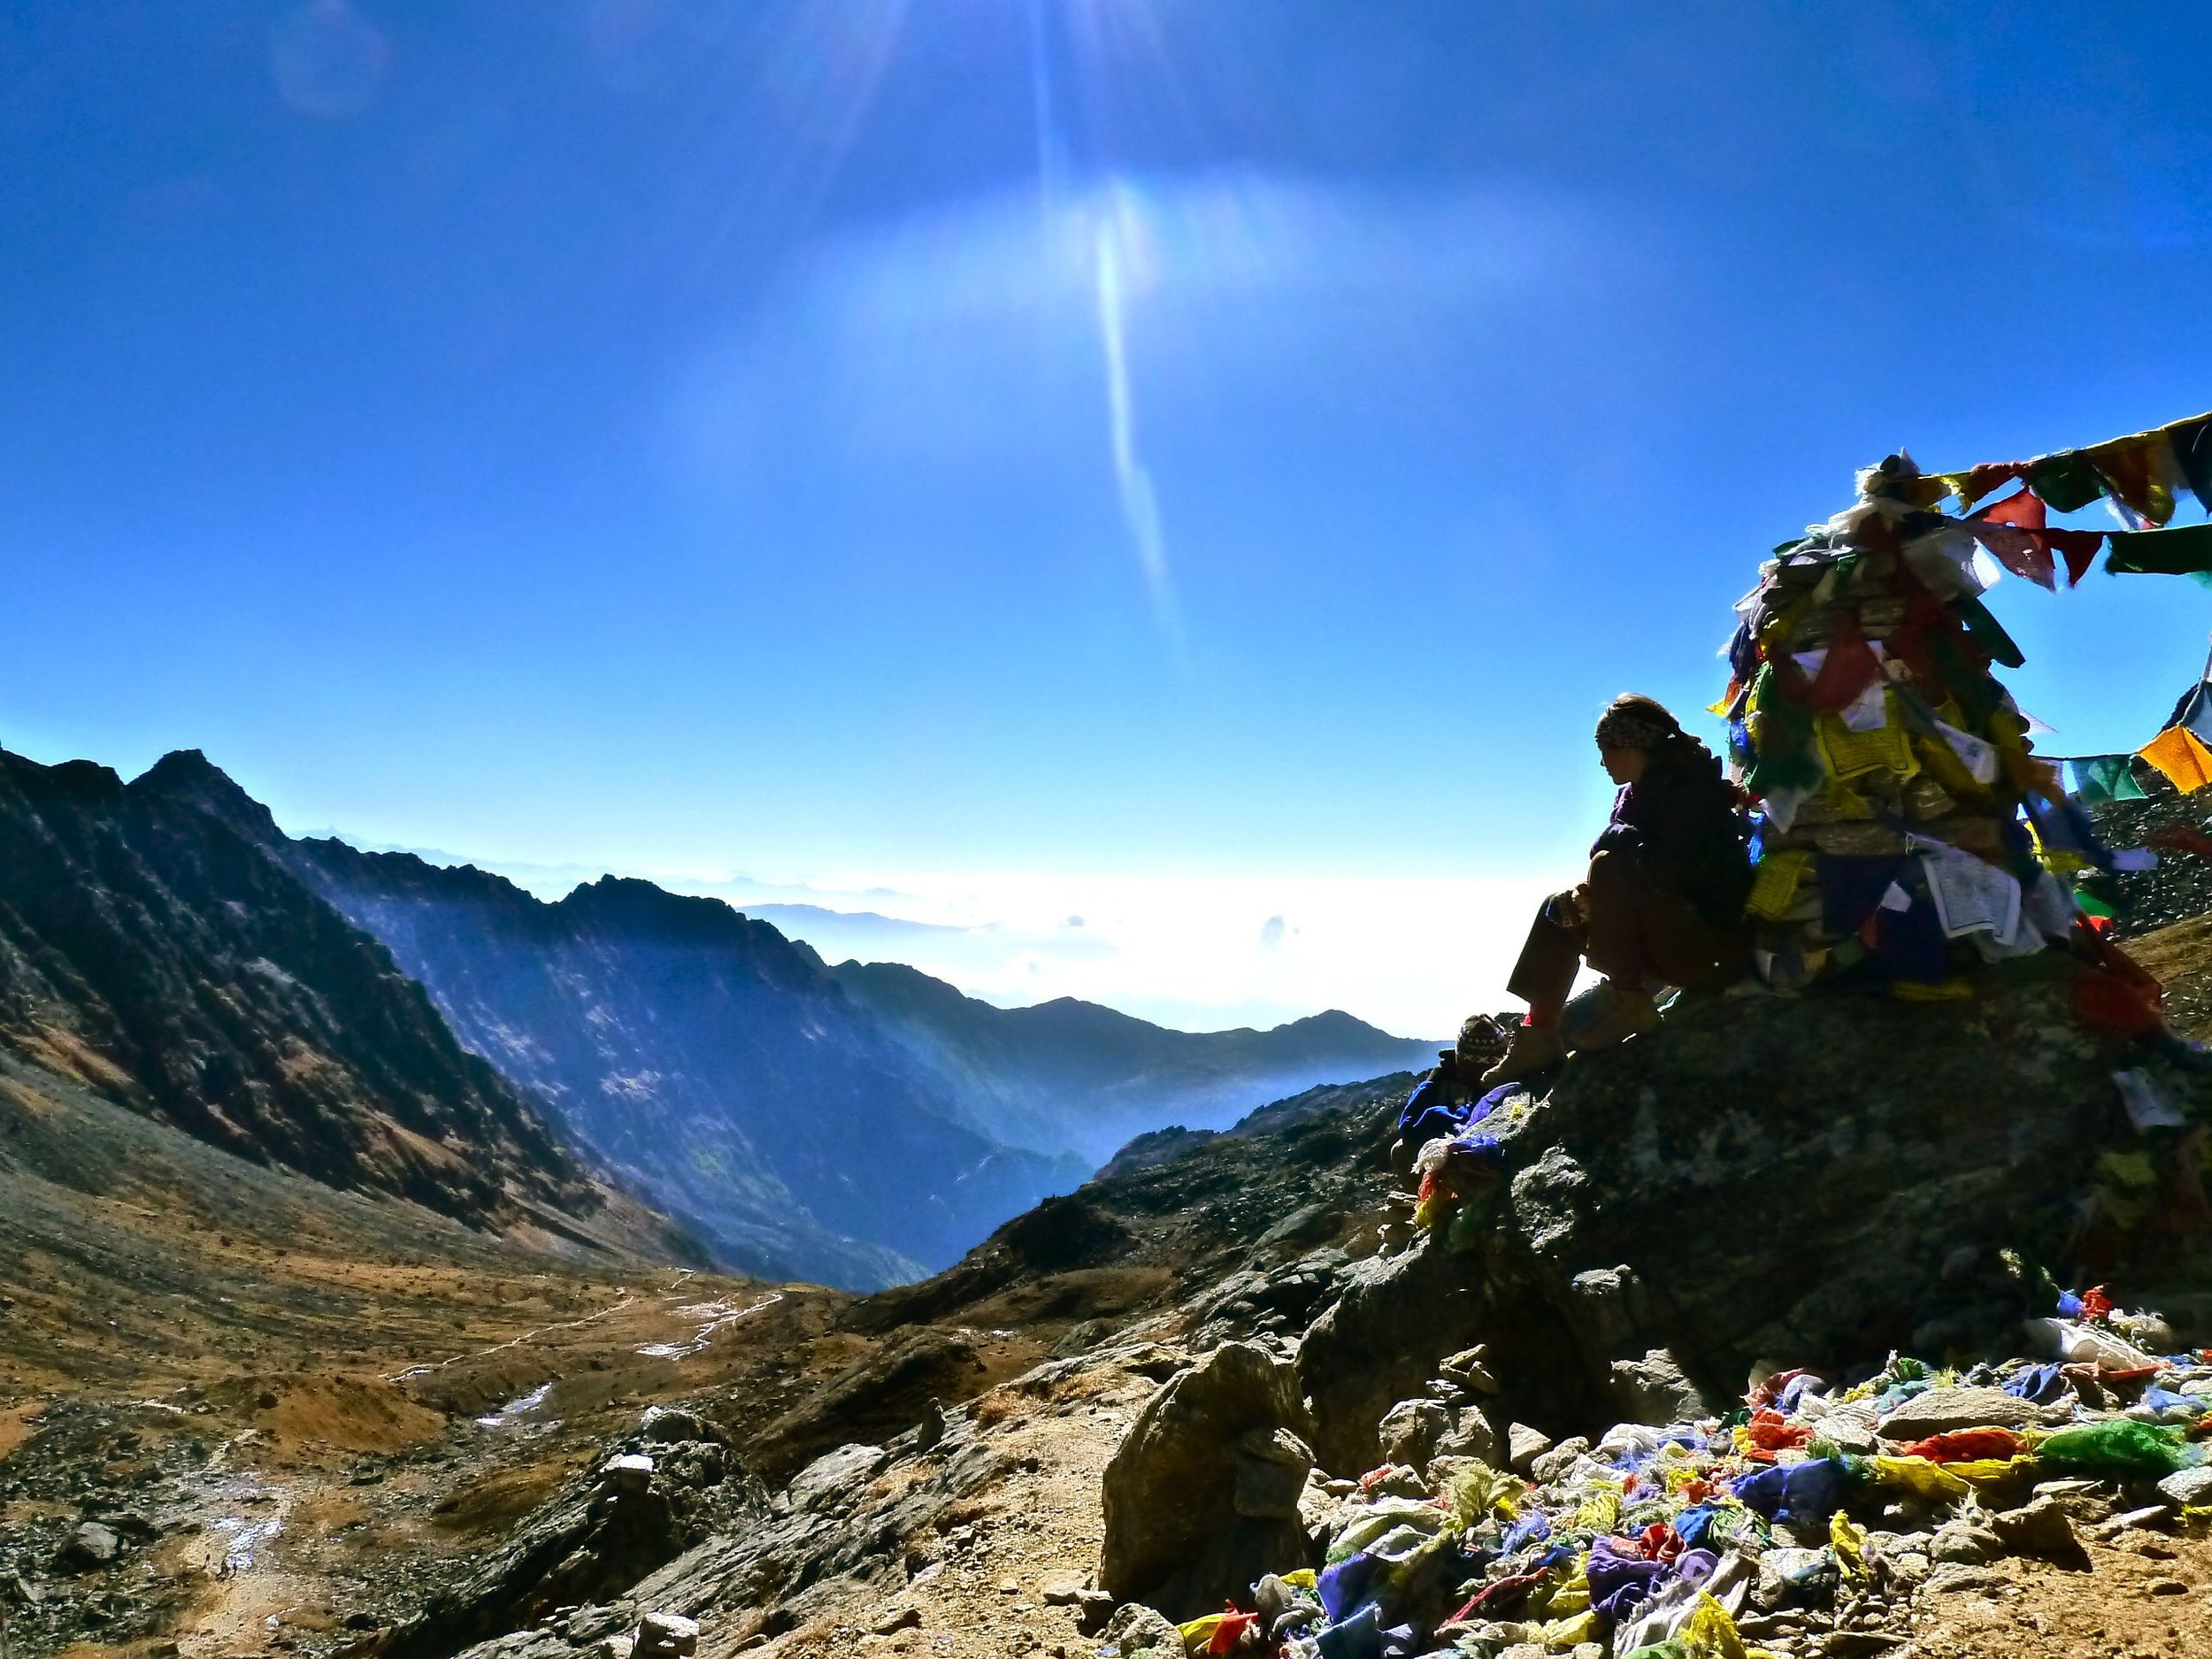 A moment of contemplation. After three days of walking up, we begin our descent of the Gosaikunda pass